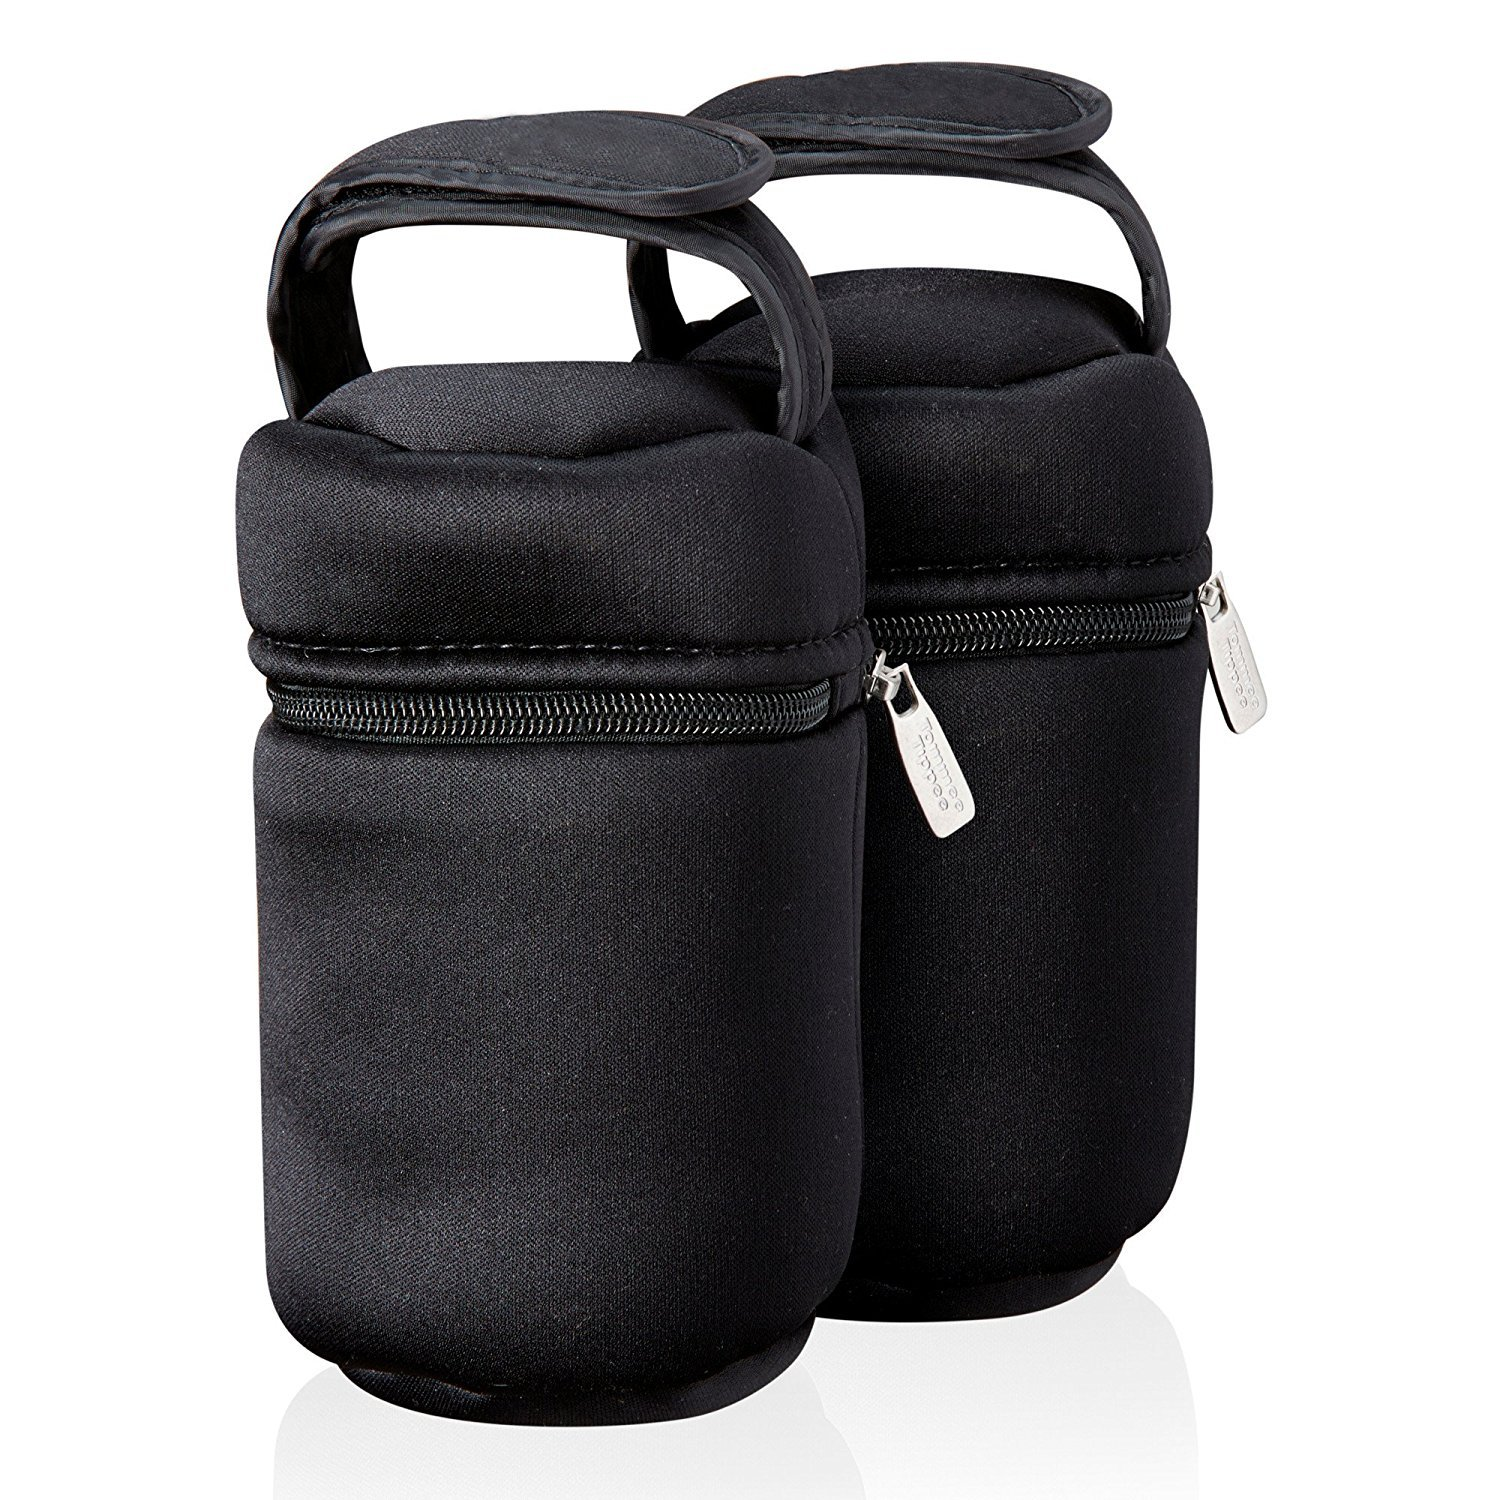 Ctn Insulated Bottle Bags x 2 holds 260ml & 150ml bottles bpa free tommee tippee